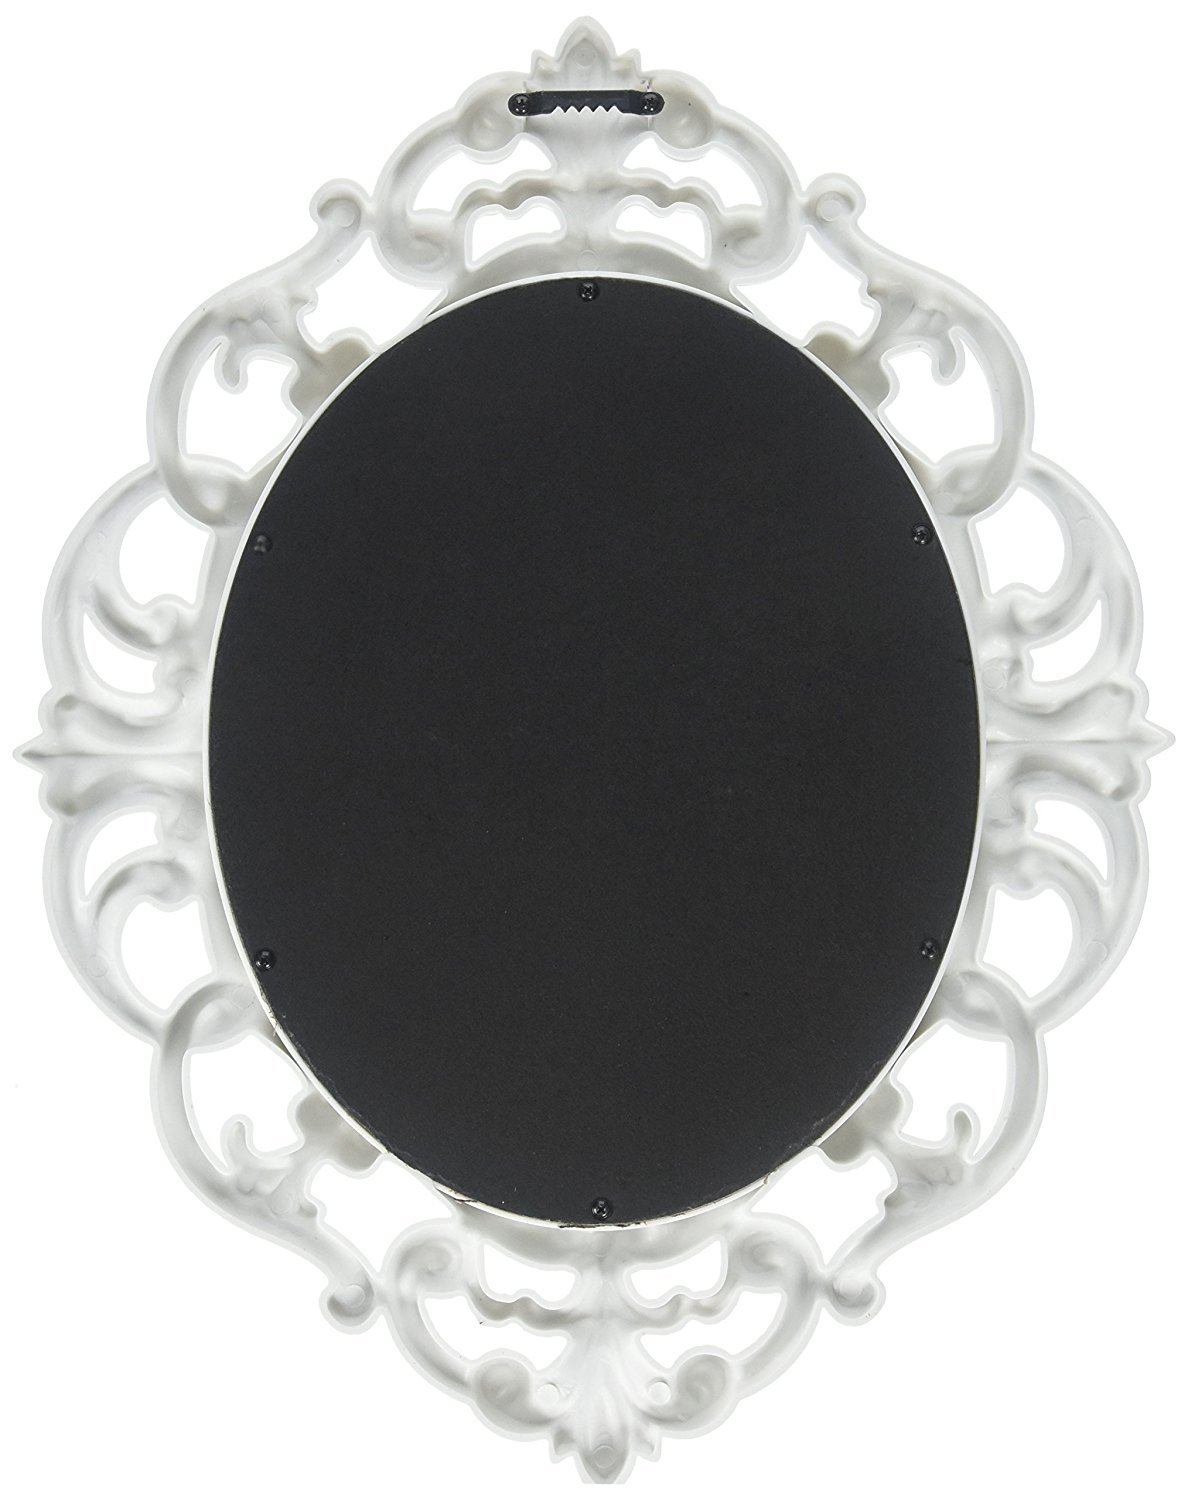 Kole White Oval Vintage Wall Mirror 2